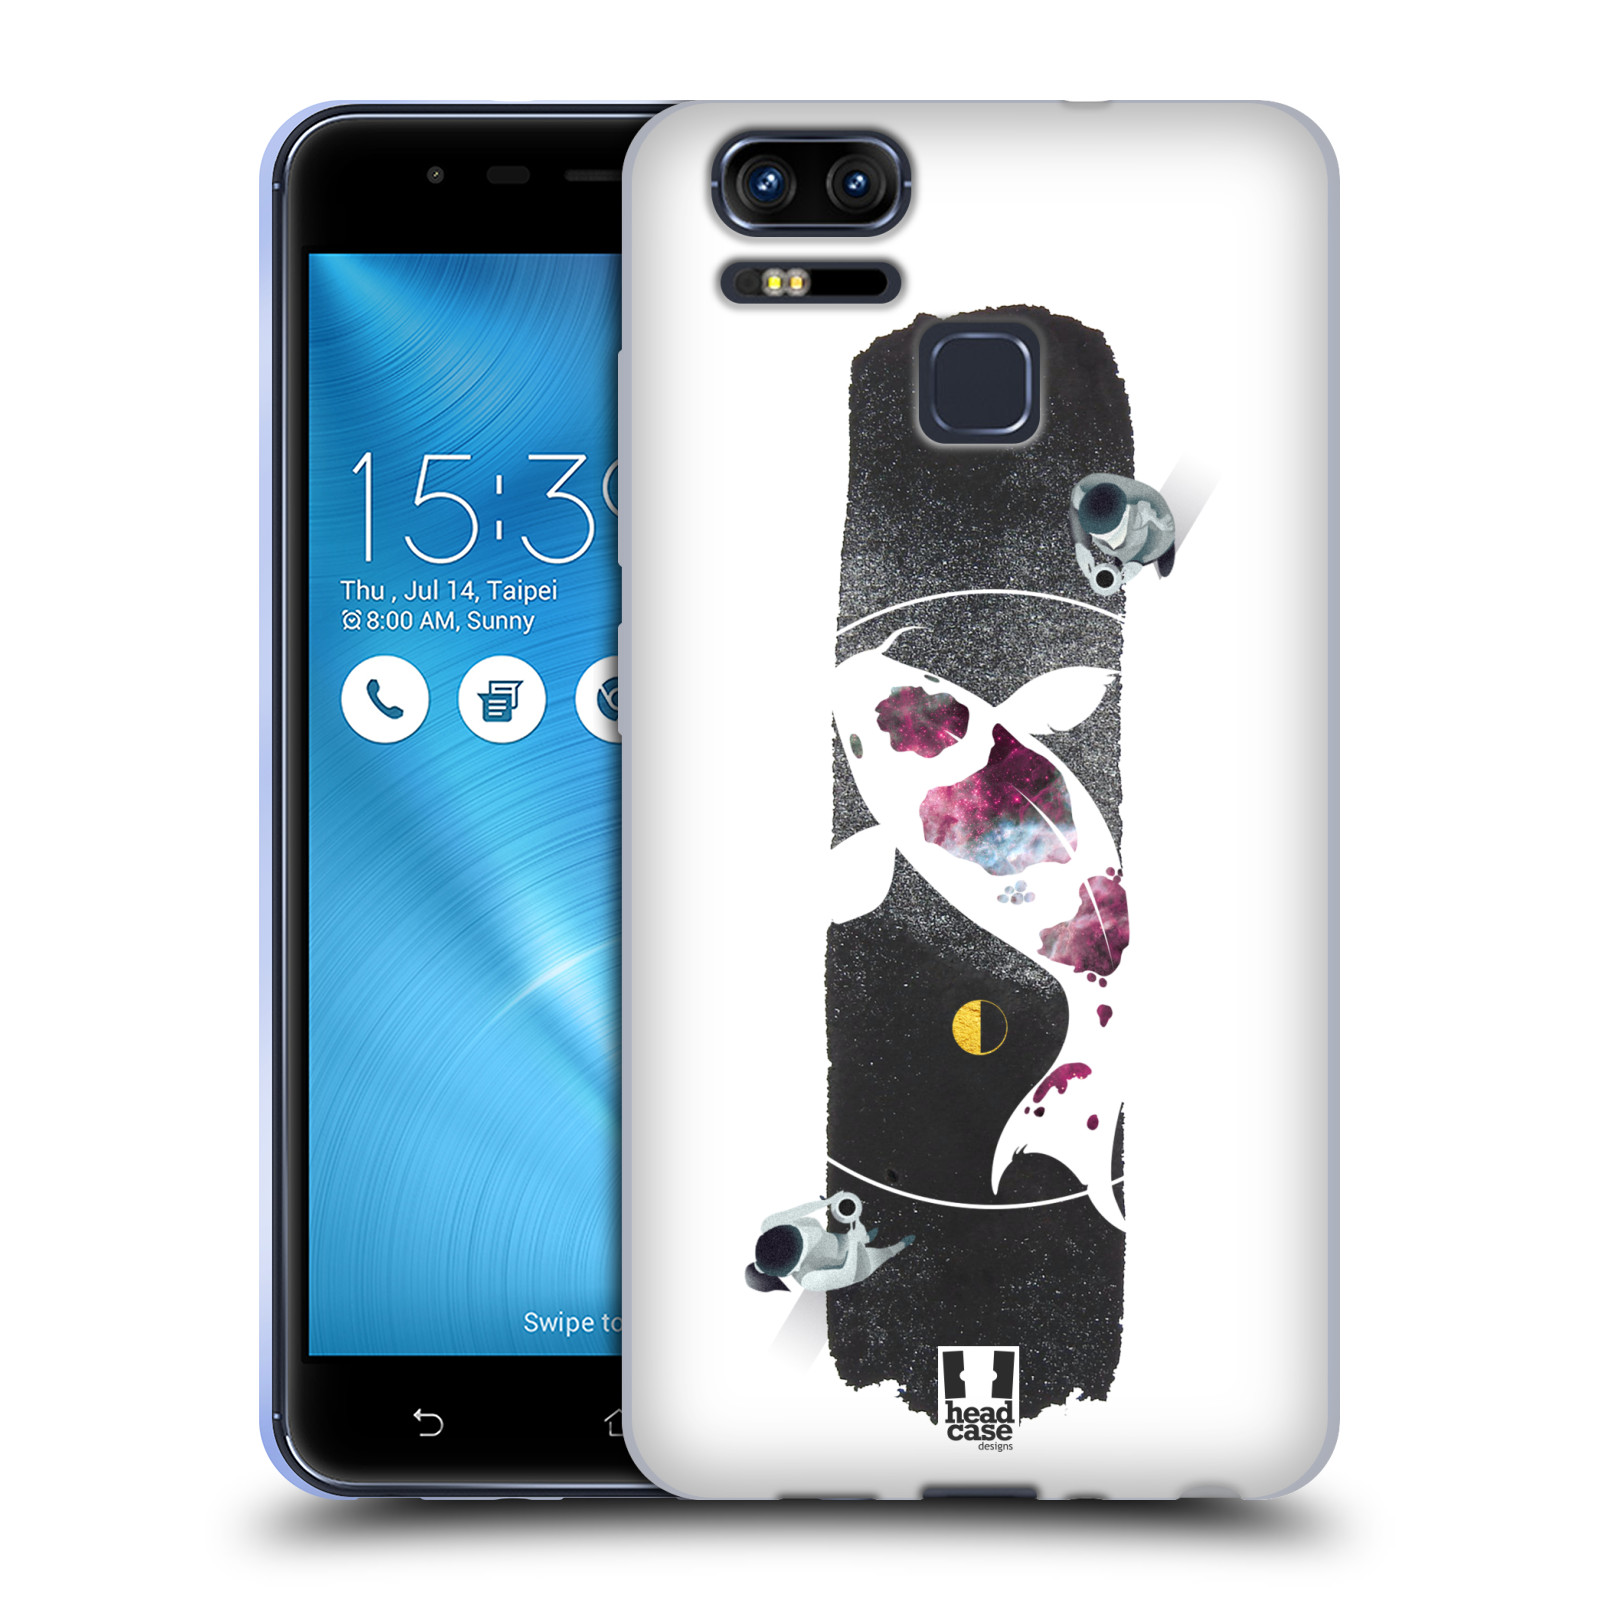 HEAD-CASE-DESIGNS-ORIENTAL-COSMOS-SOFT-GEL-CASE-FOR-ASUS-ZENFONE-3-ZOOM-ZE553KL